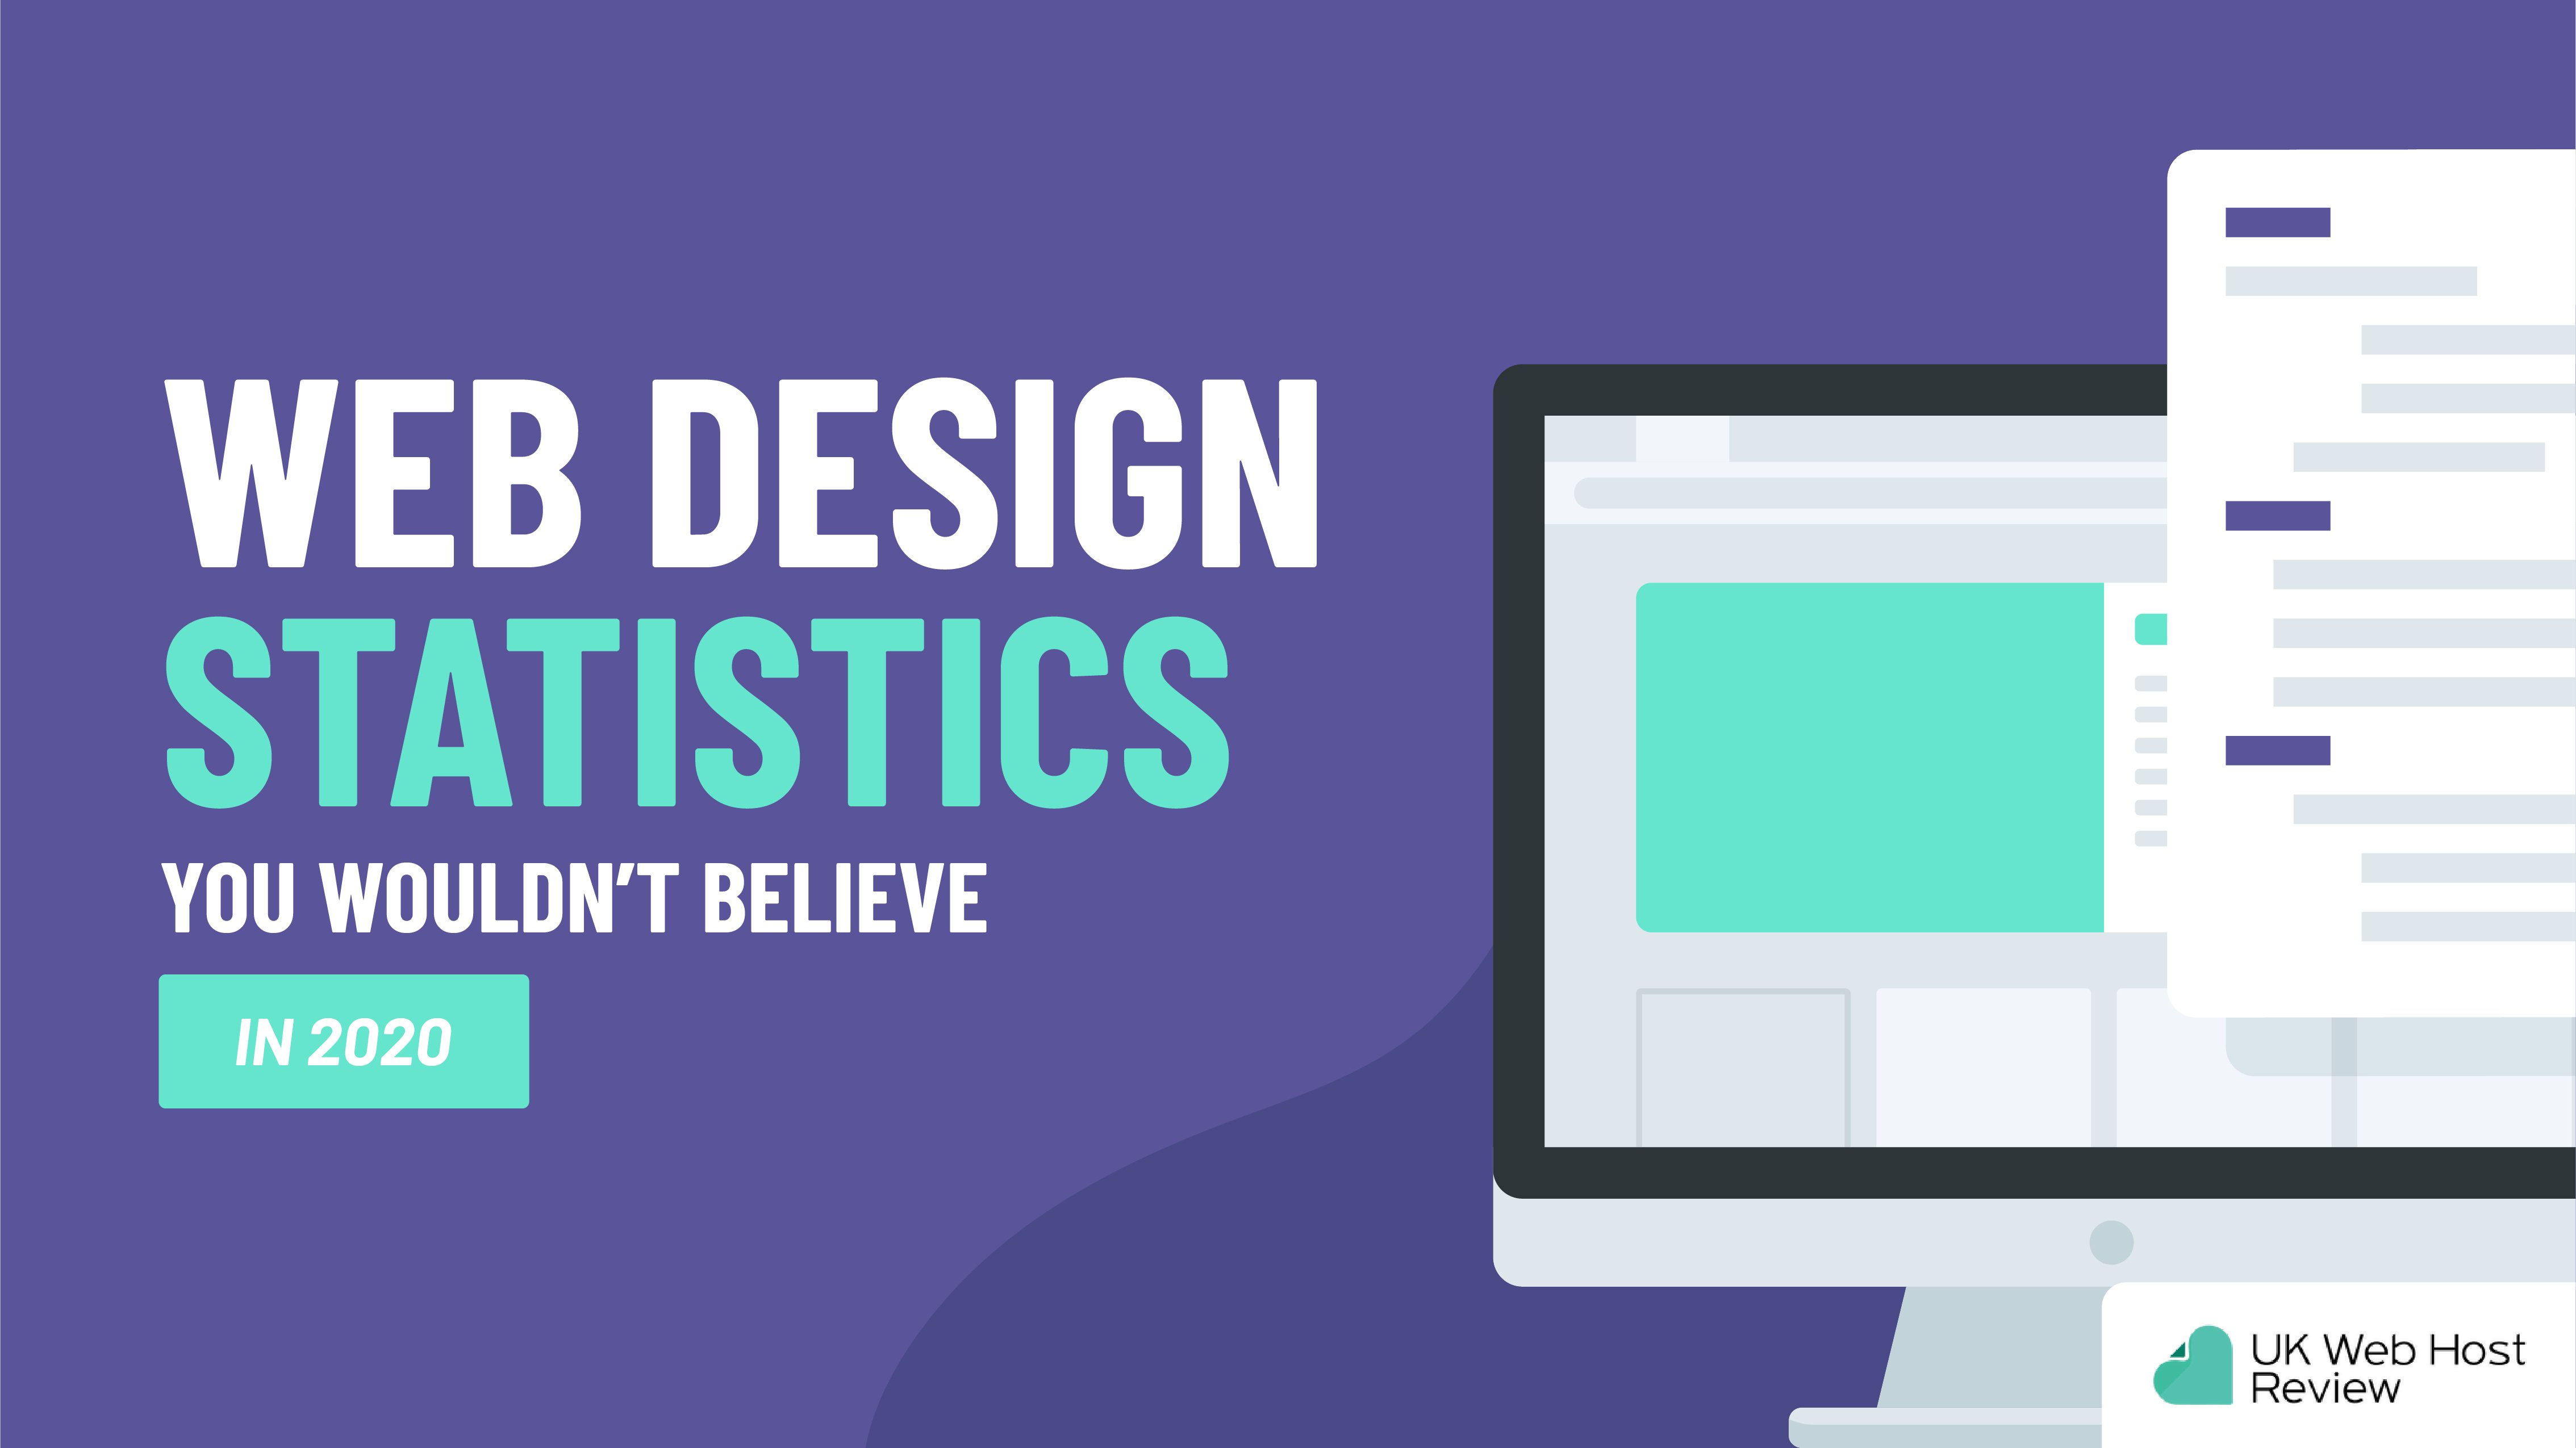 55 Web Design Statistics in 2021 [INFOGRAPHIC]